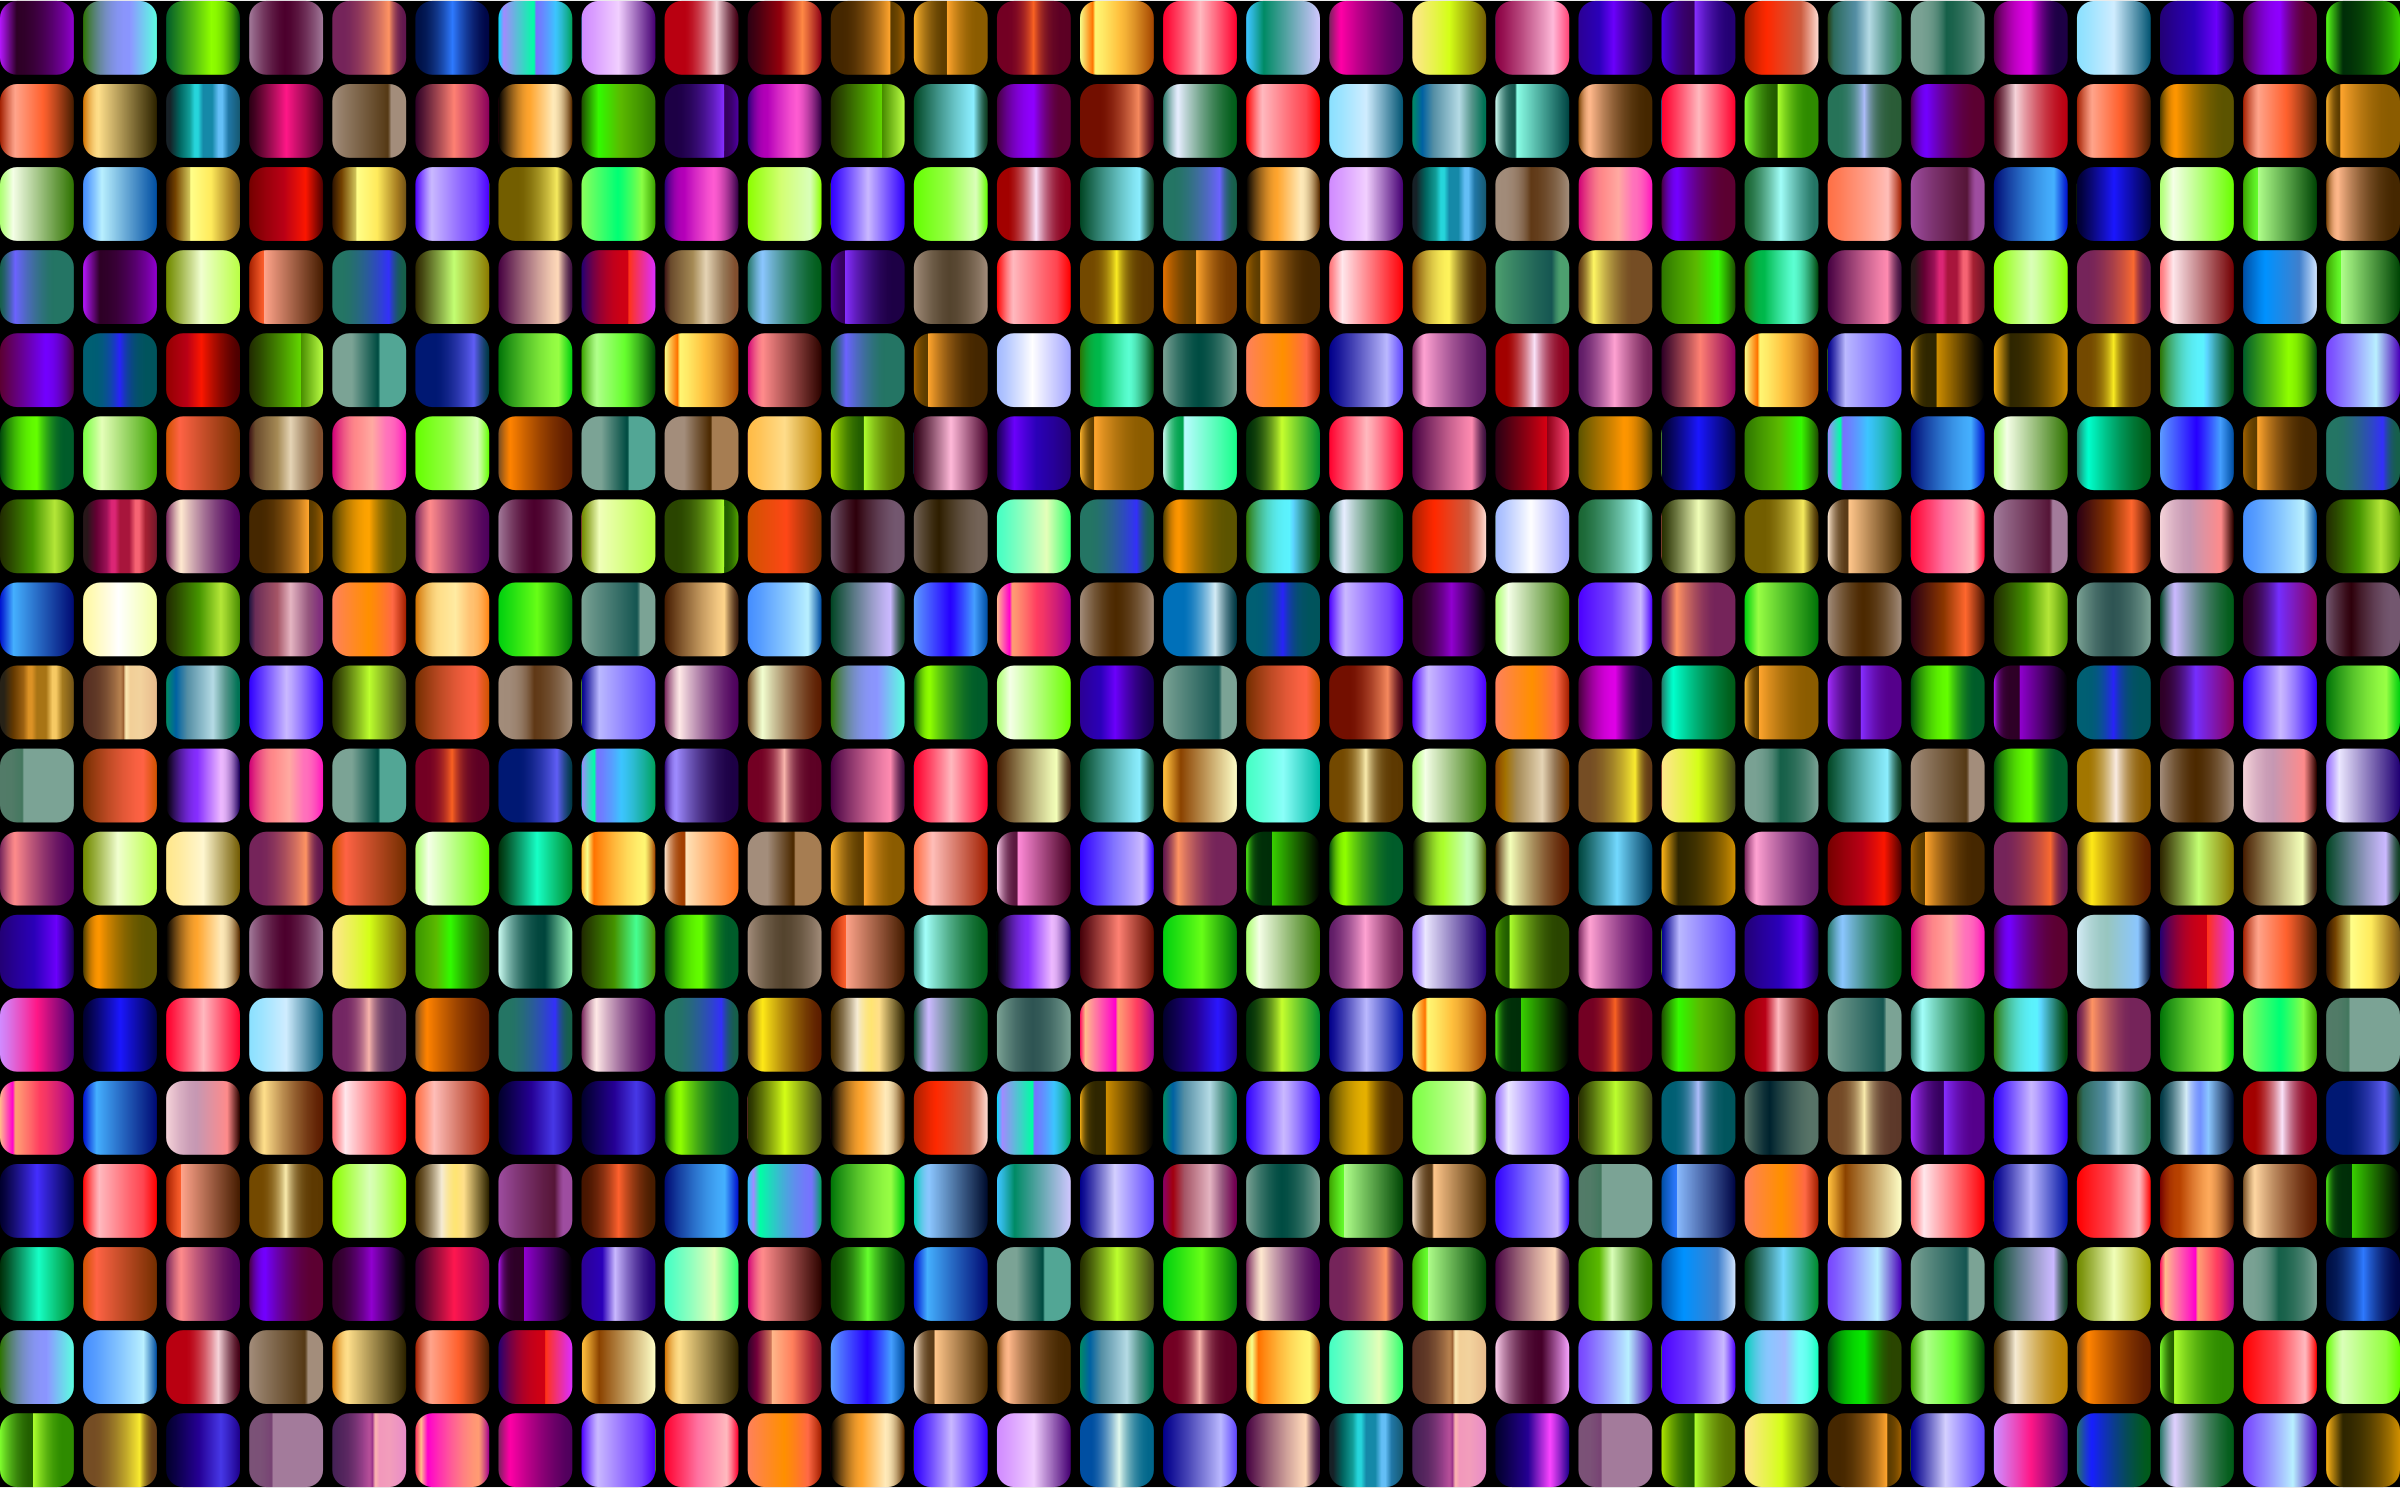 Prismatic Rounded Squares Grid 4 by GDJ